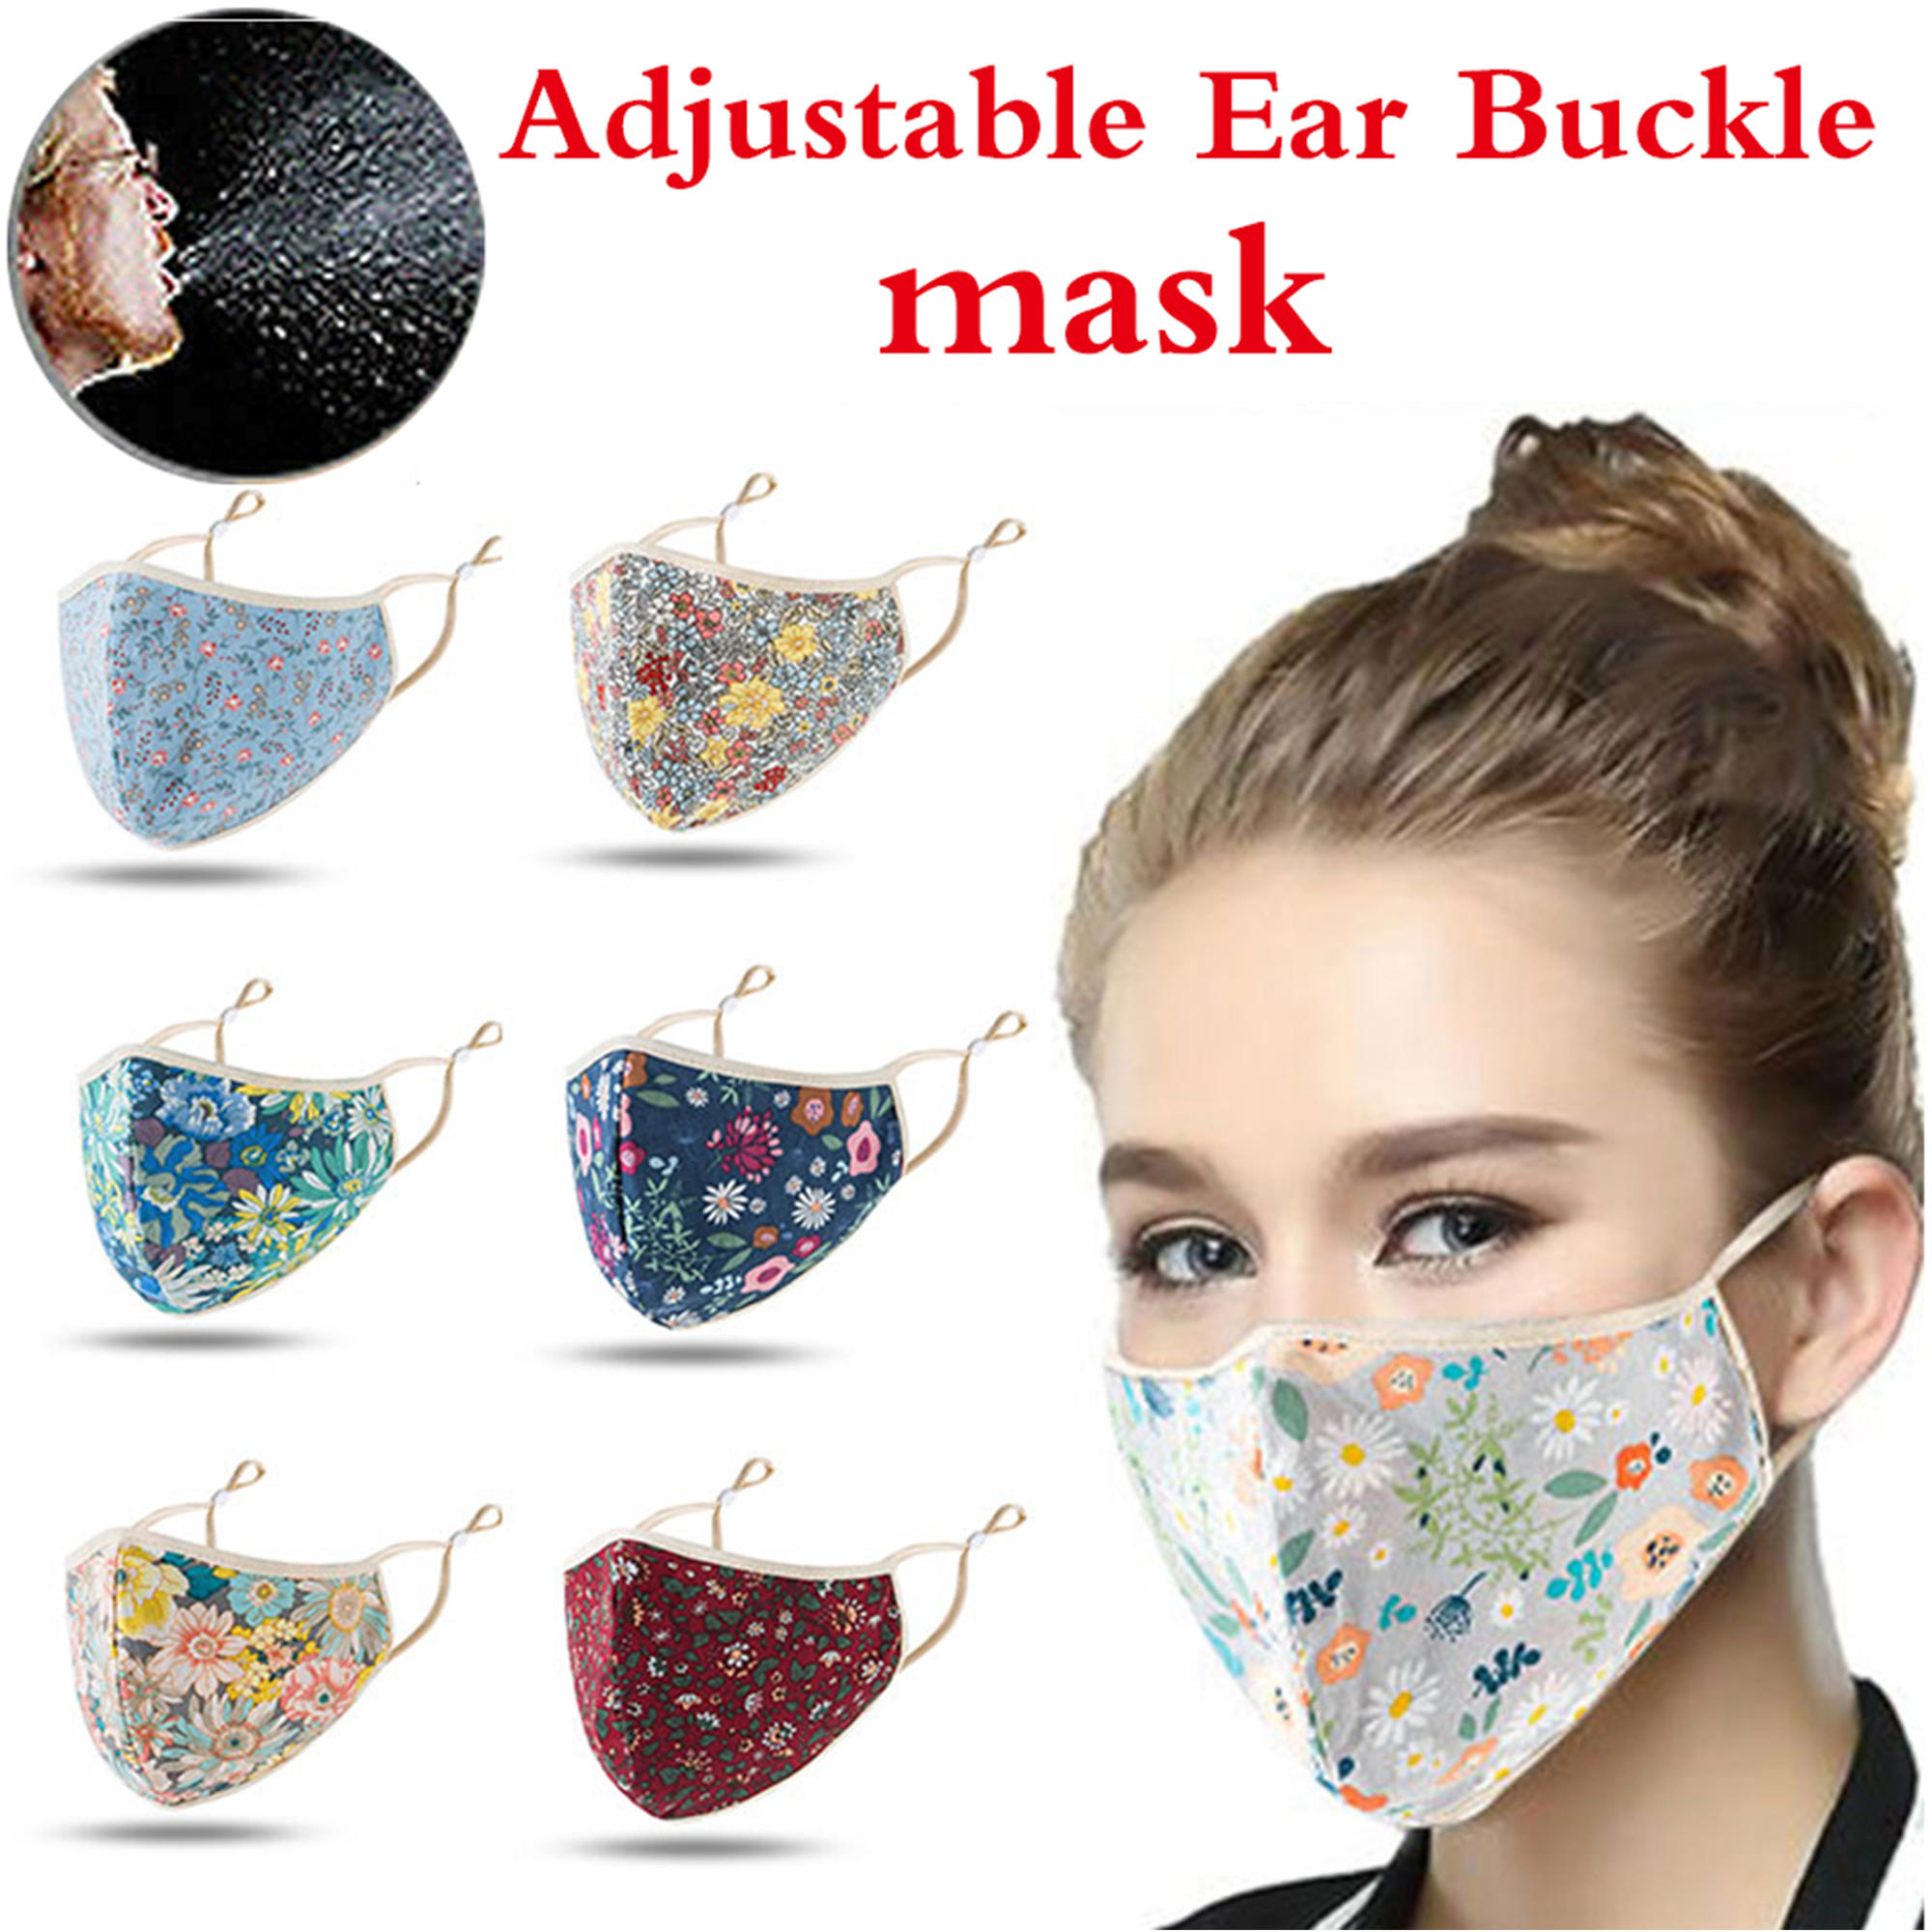 Cuh Women Man Reasuable Floral Half Face Covering Fashion Clothing Adjustable Washable Outdoor Sport Run Protection Walmart Com Walmart Com